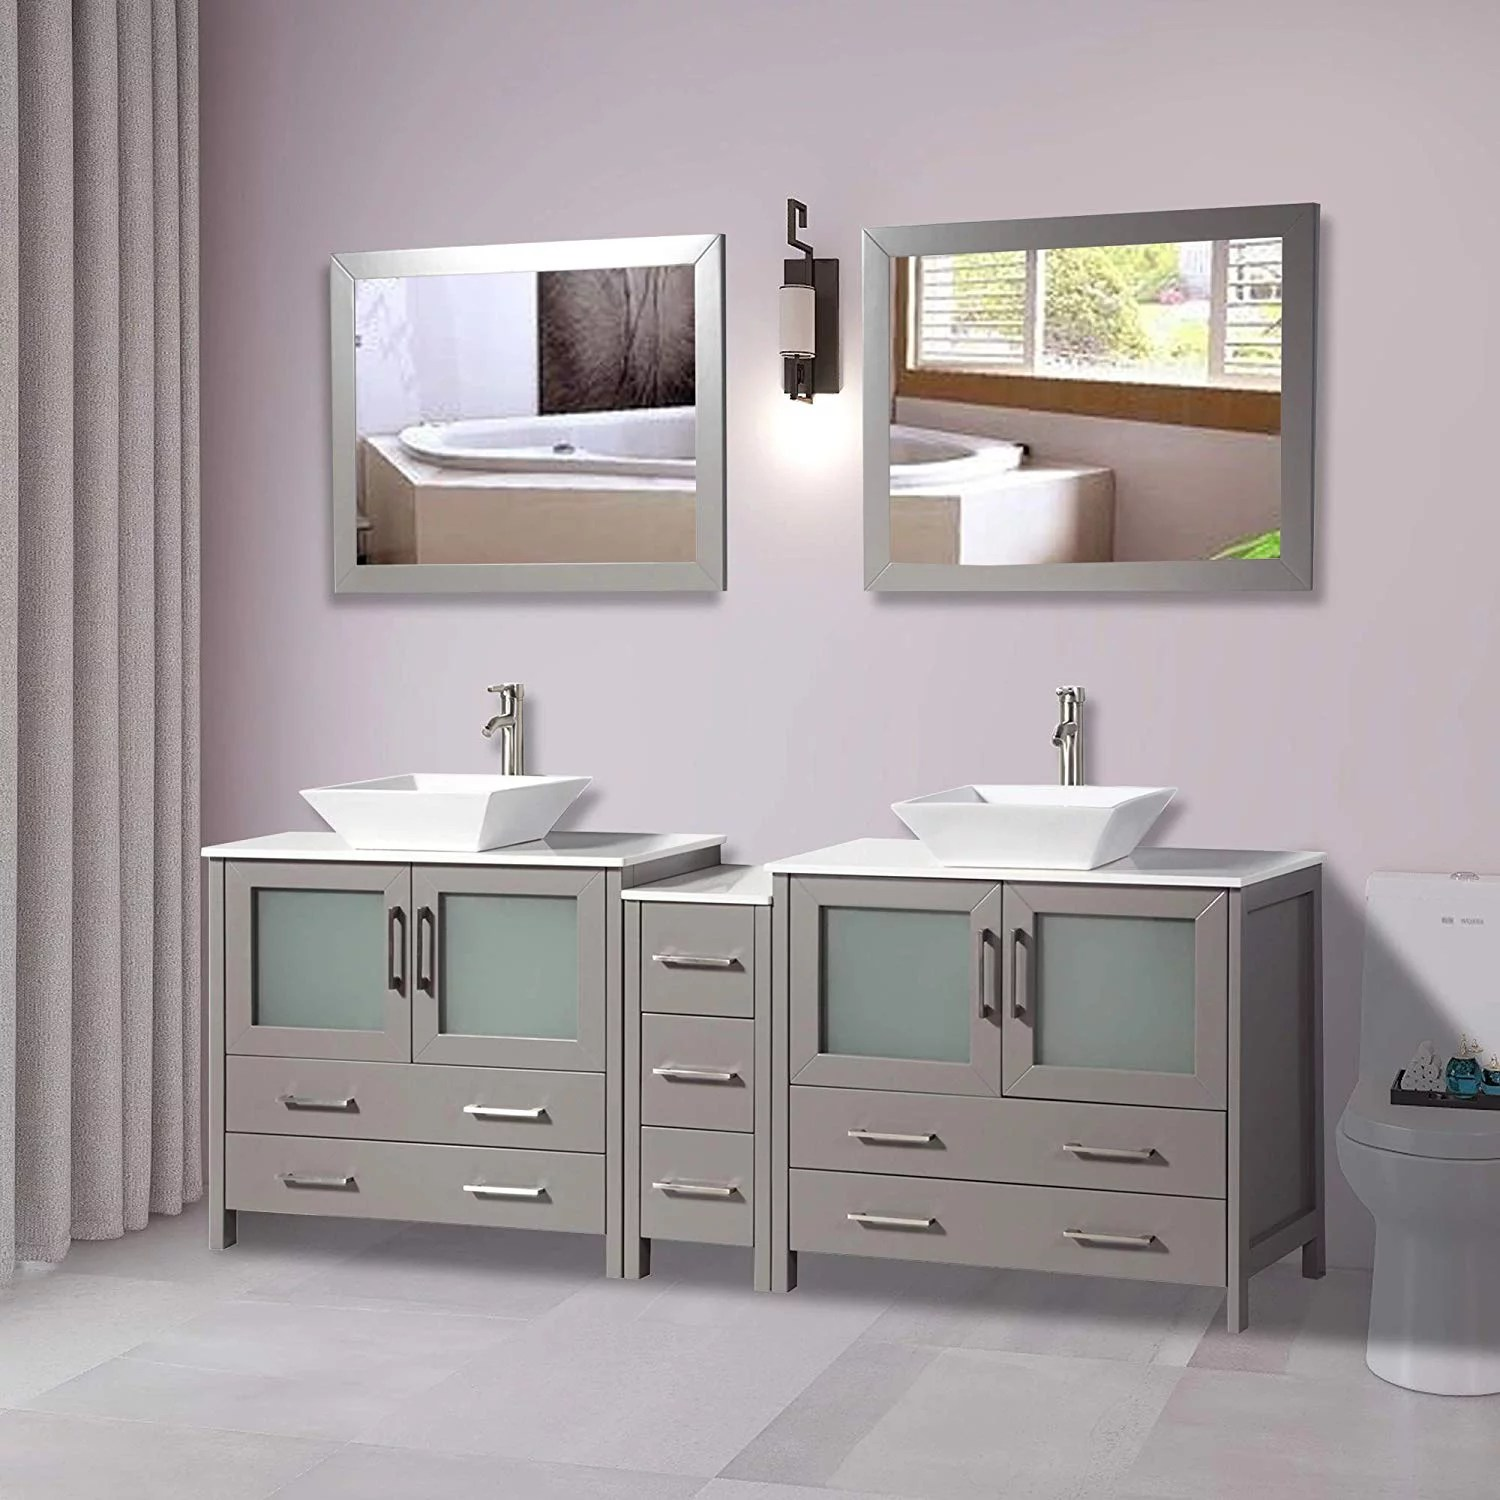 vanity art 84 inches double sink bathroom vanity compact set 3 cabinets 2 shelves 7 drawers quartz top and ceramic vessel sink bathroom cabinet with